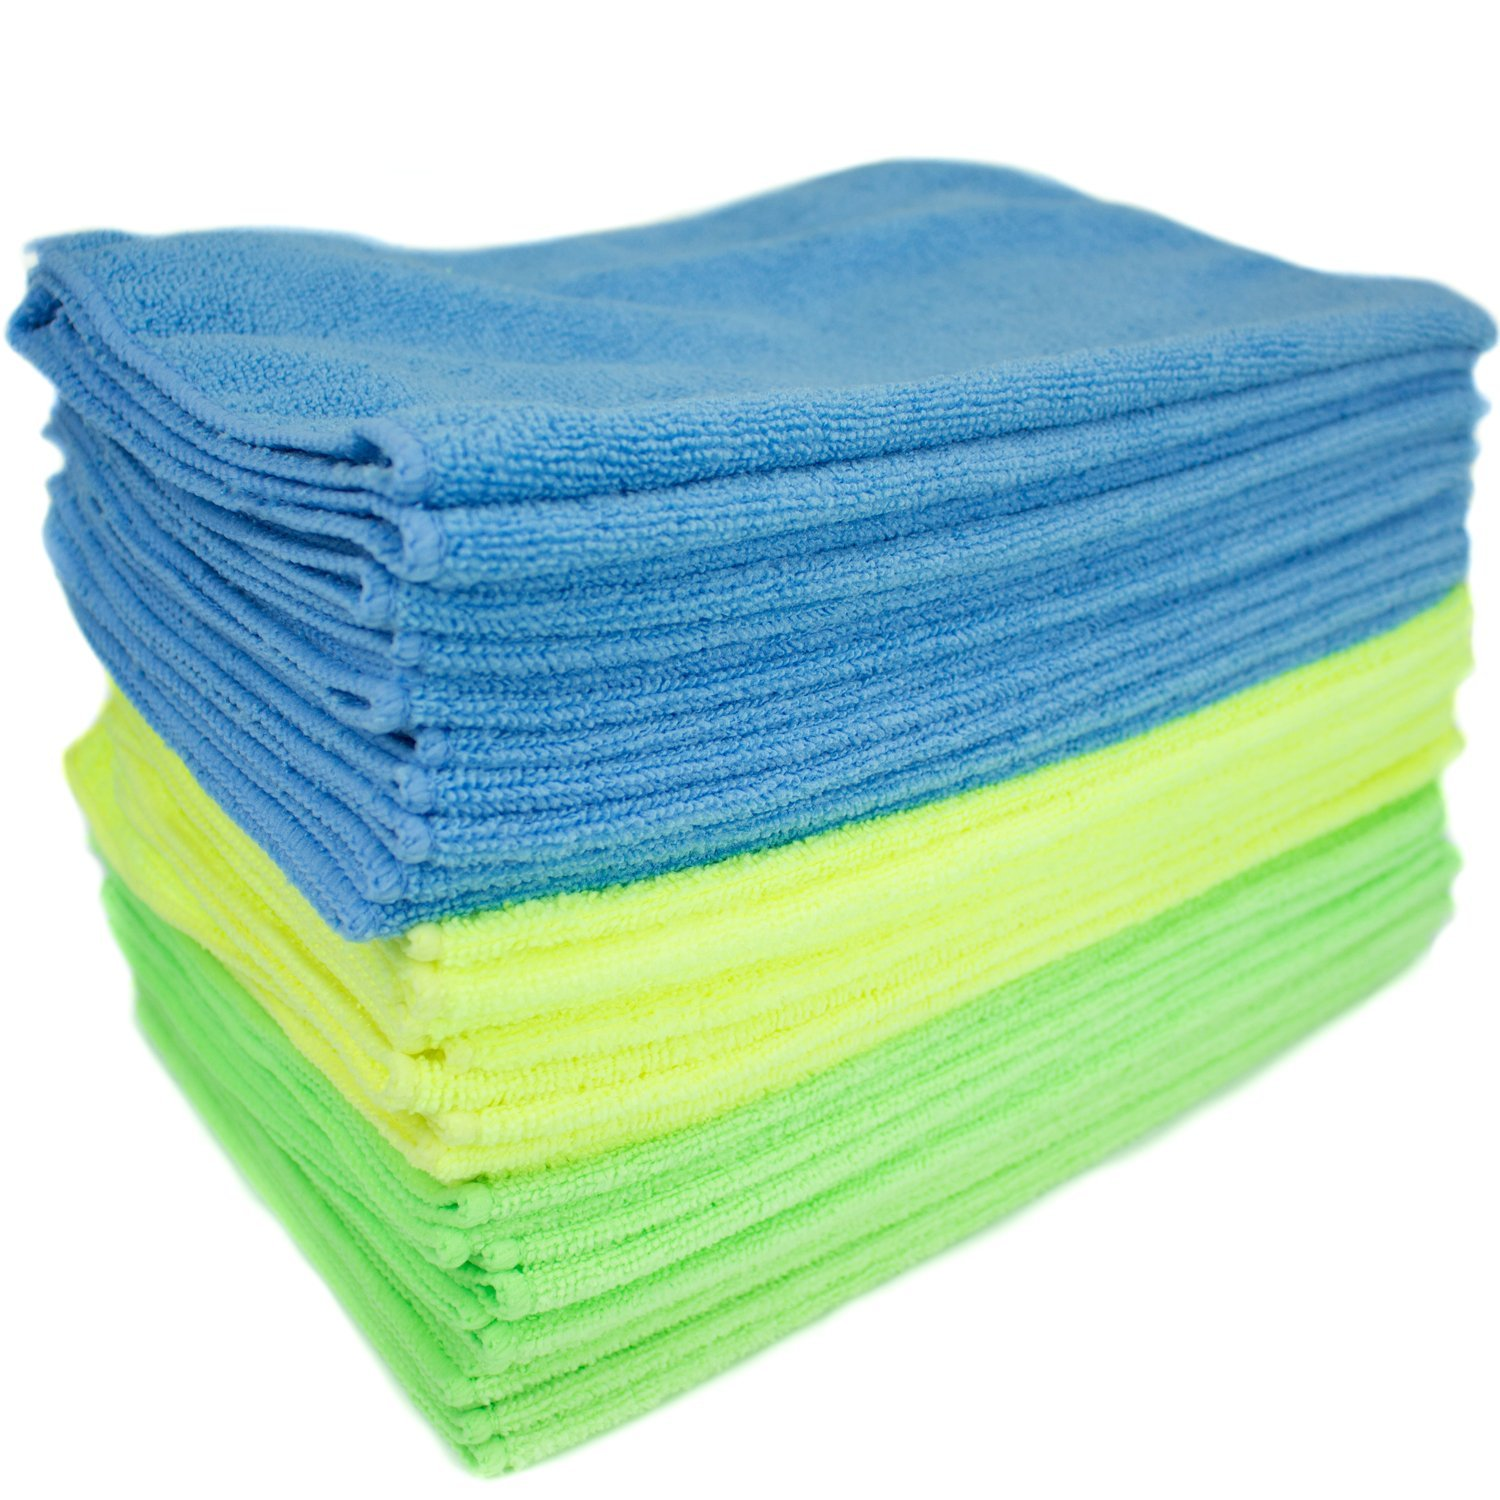 Microfiber cloth - a versatile cleaning tool 13